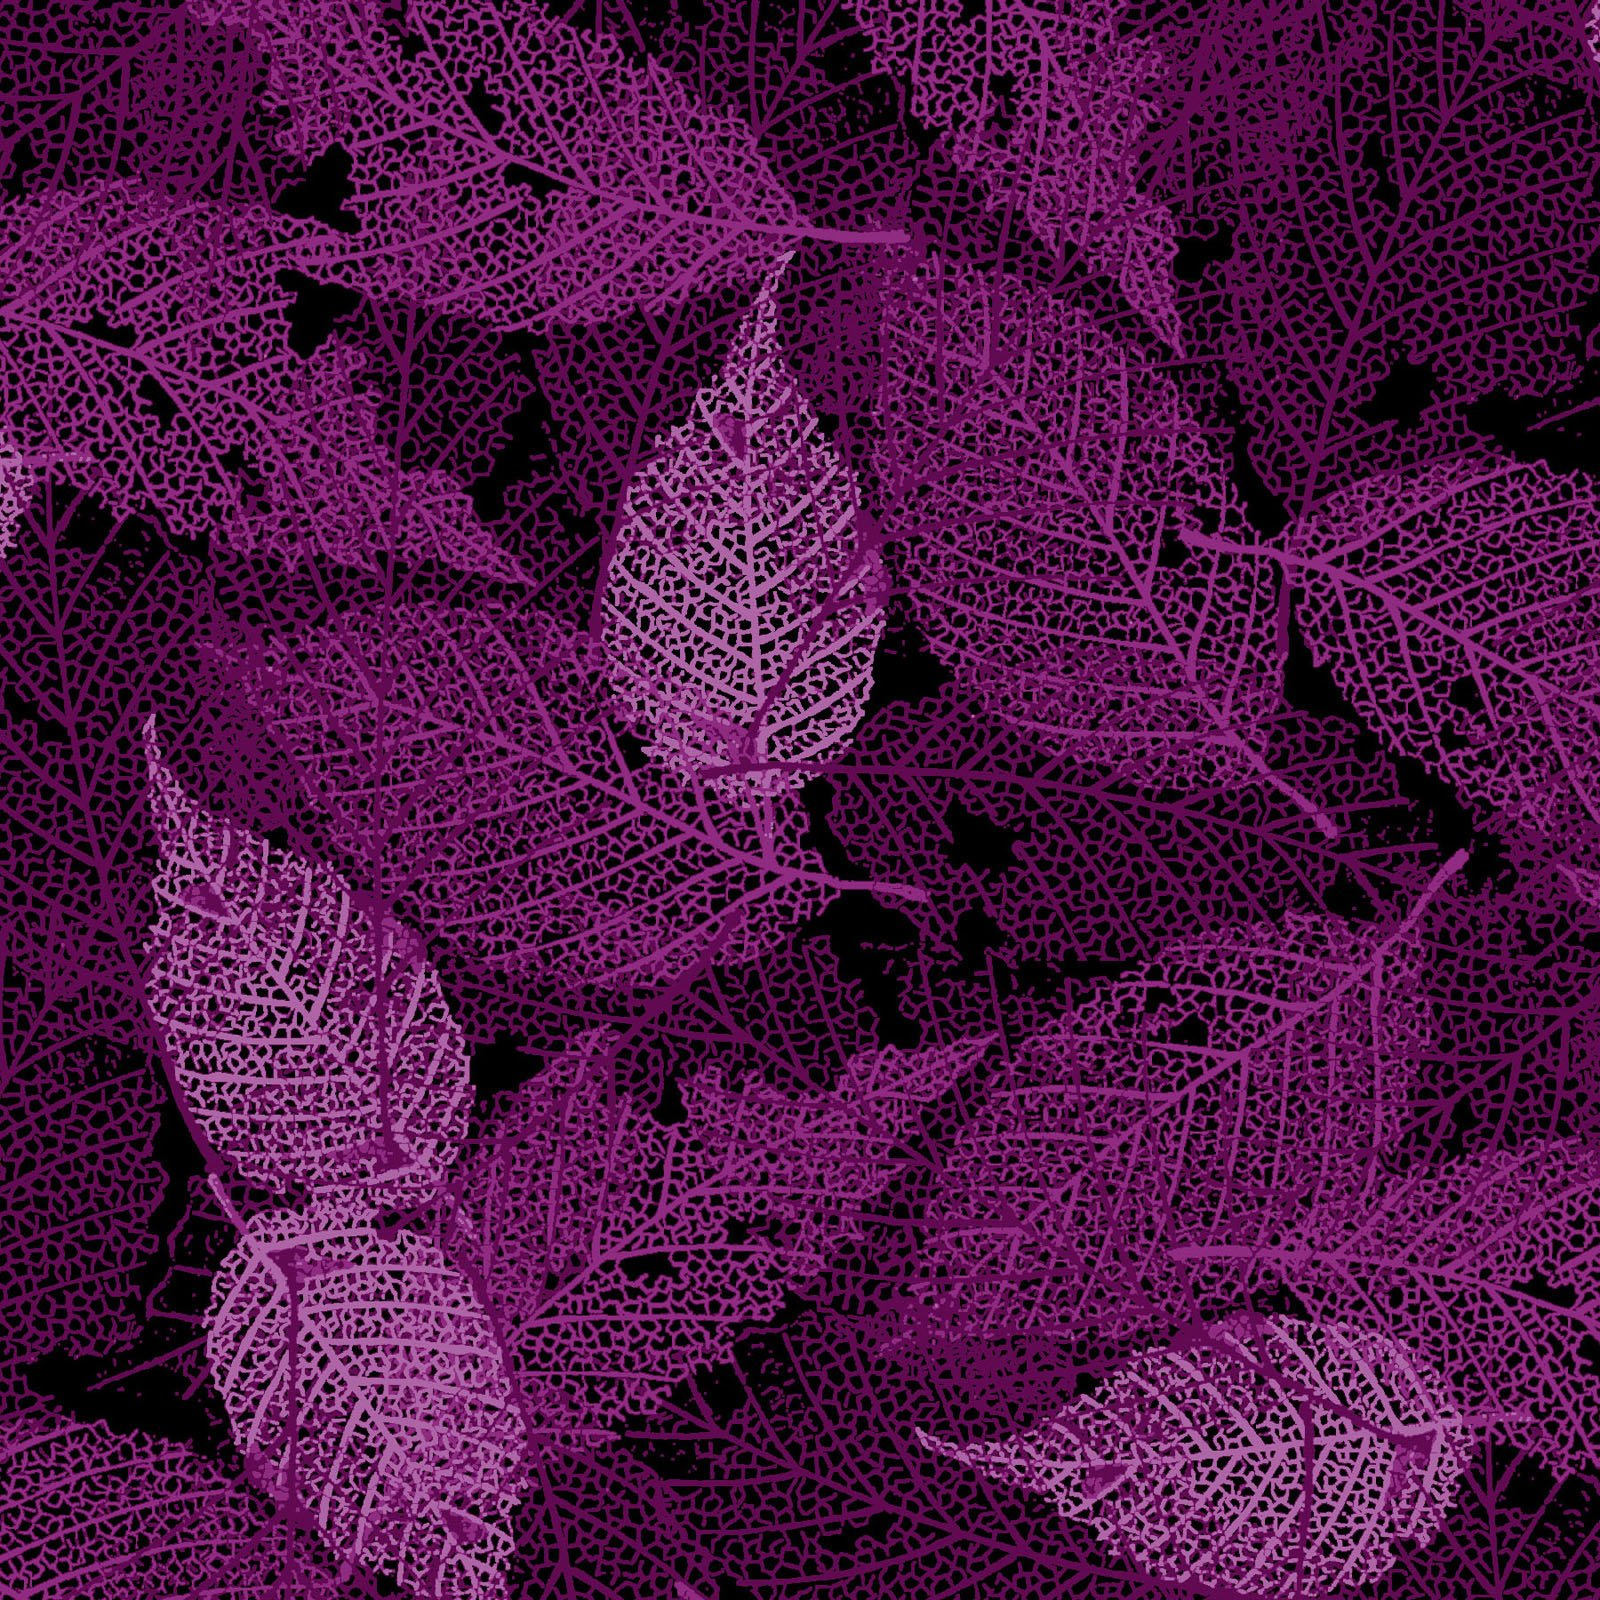 FOLI-4478 RV - FOLIAGE BY P&B BOUTIQUE TEXTURE LEAVES DK VIOLET - ARRIVING IN MAY 2021